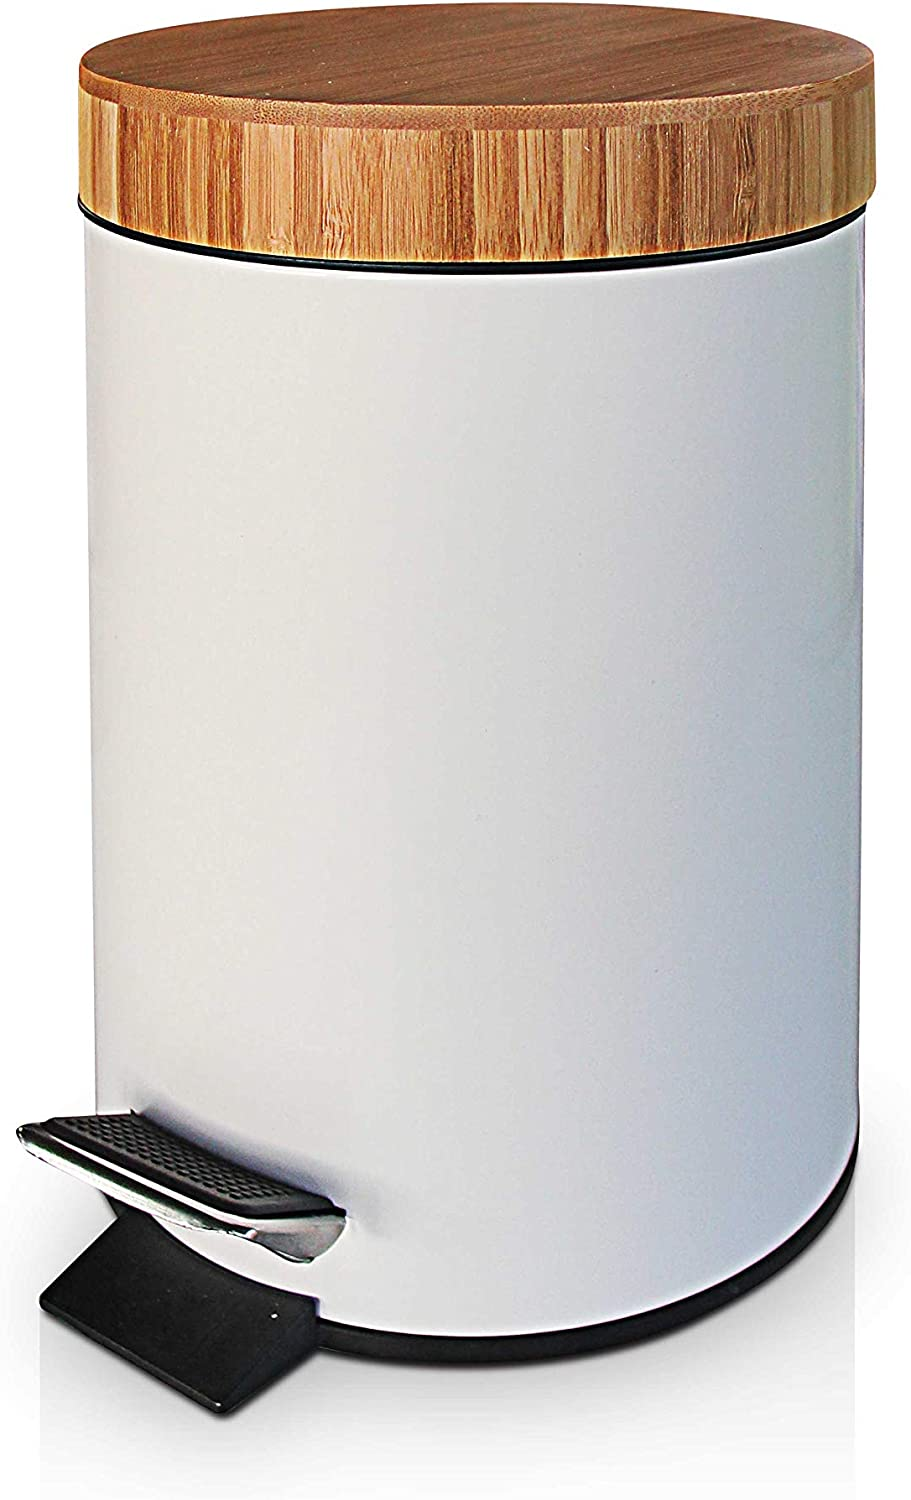 Home Office. Removable Inner Wastebasket VORZAVARRI 3 Litre//0.8 Gallon Small Compact Round Metal Trash Can Foot Pedal for Bathroom Garbage Bin with Soft Closing Bamboo Lid Kitchen